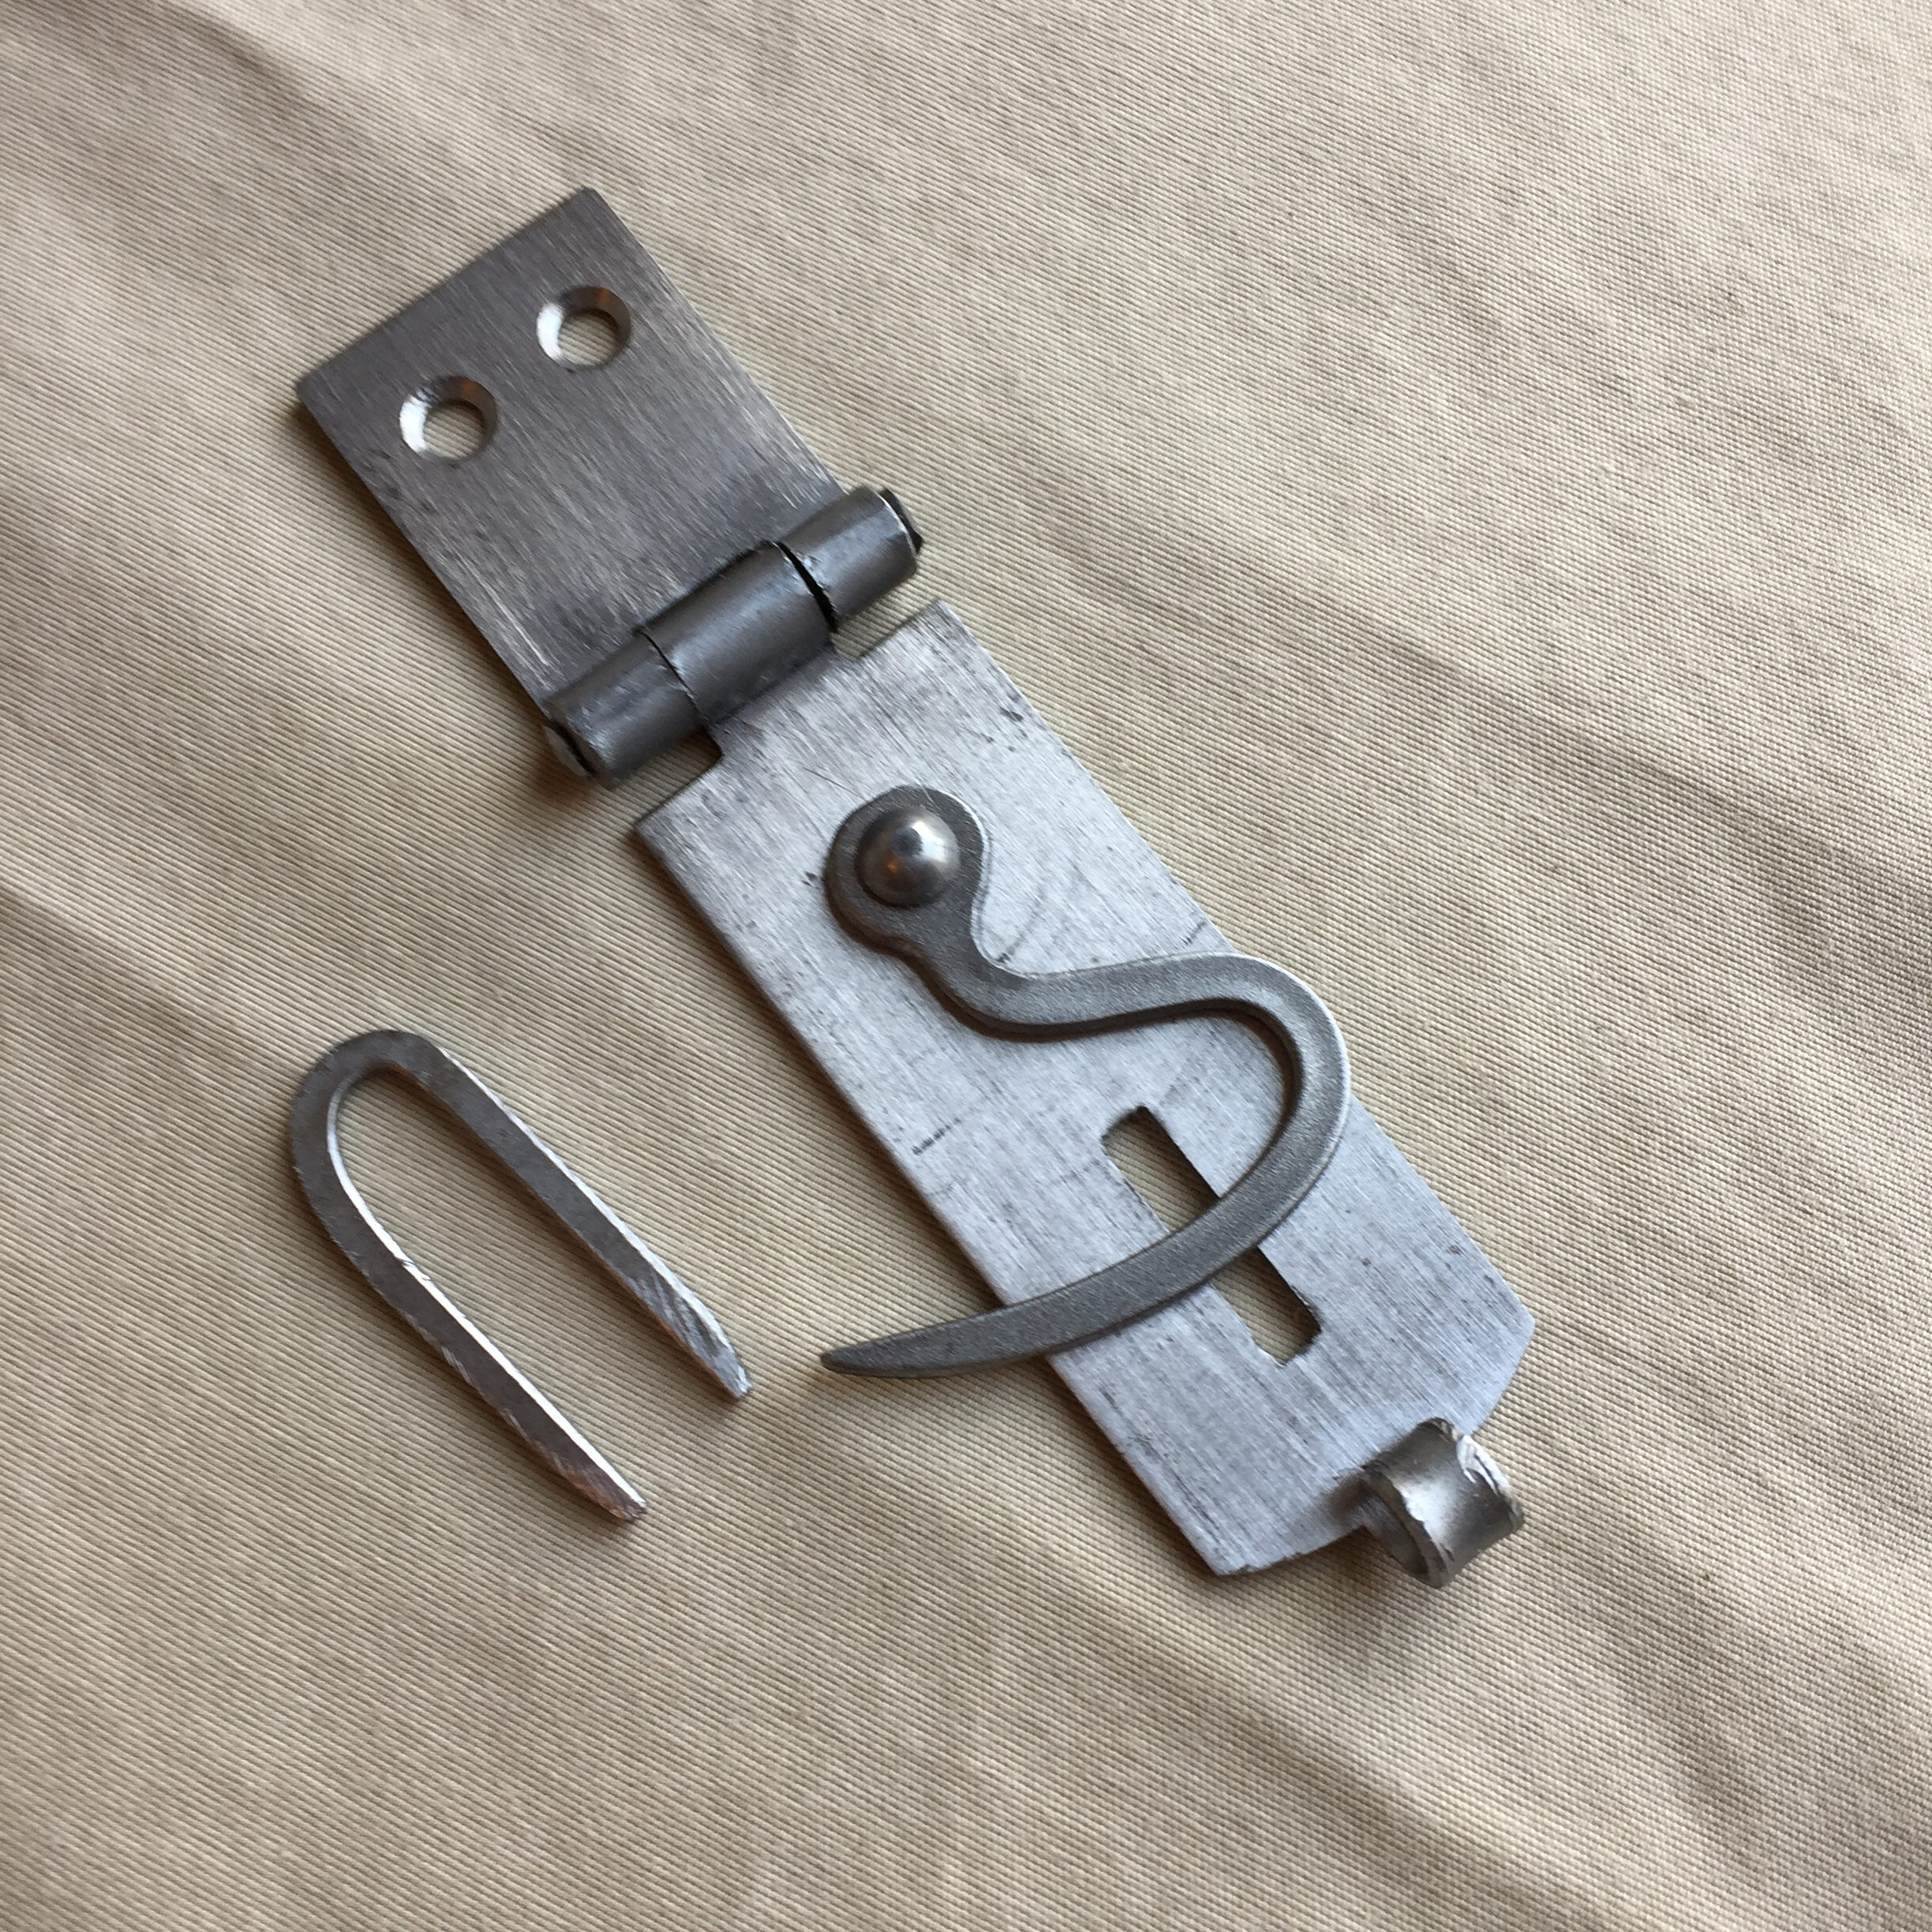 Iron hasp and staple